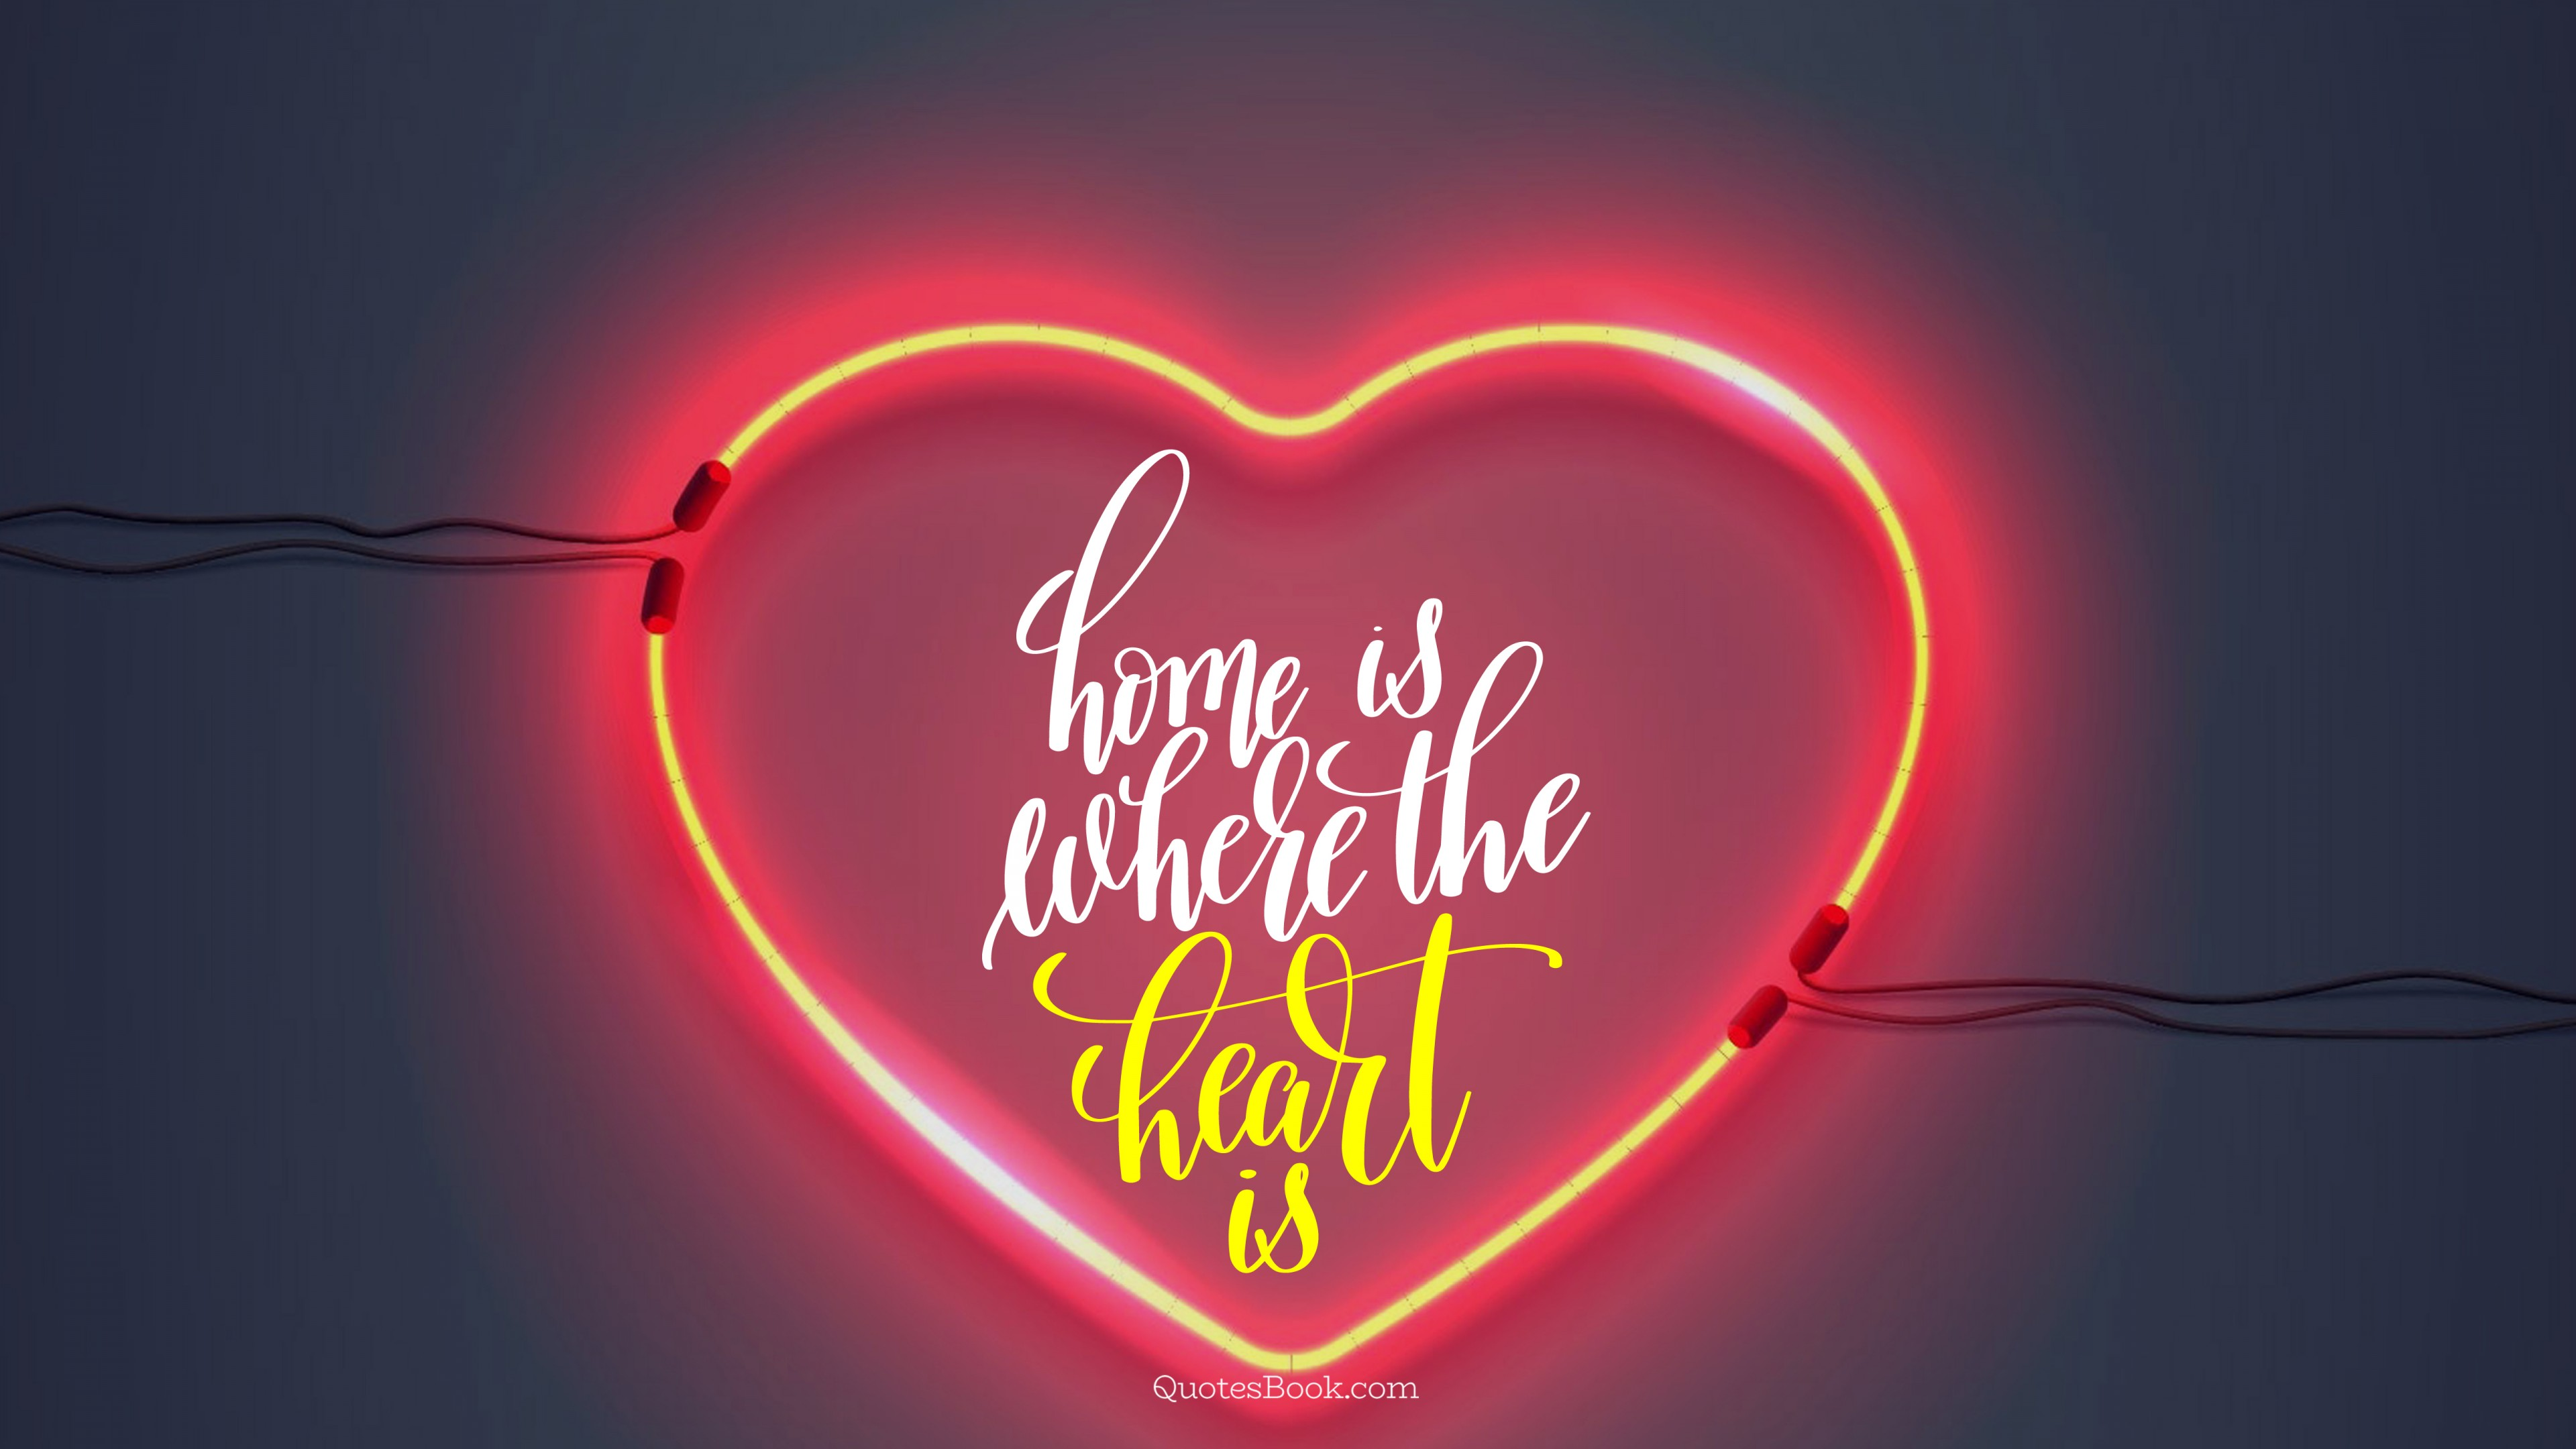 Home is where the heart is - QuotesBook